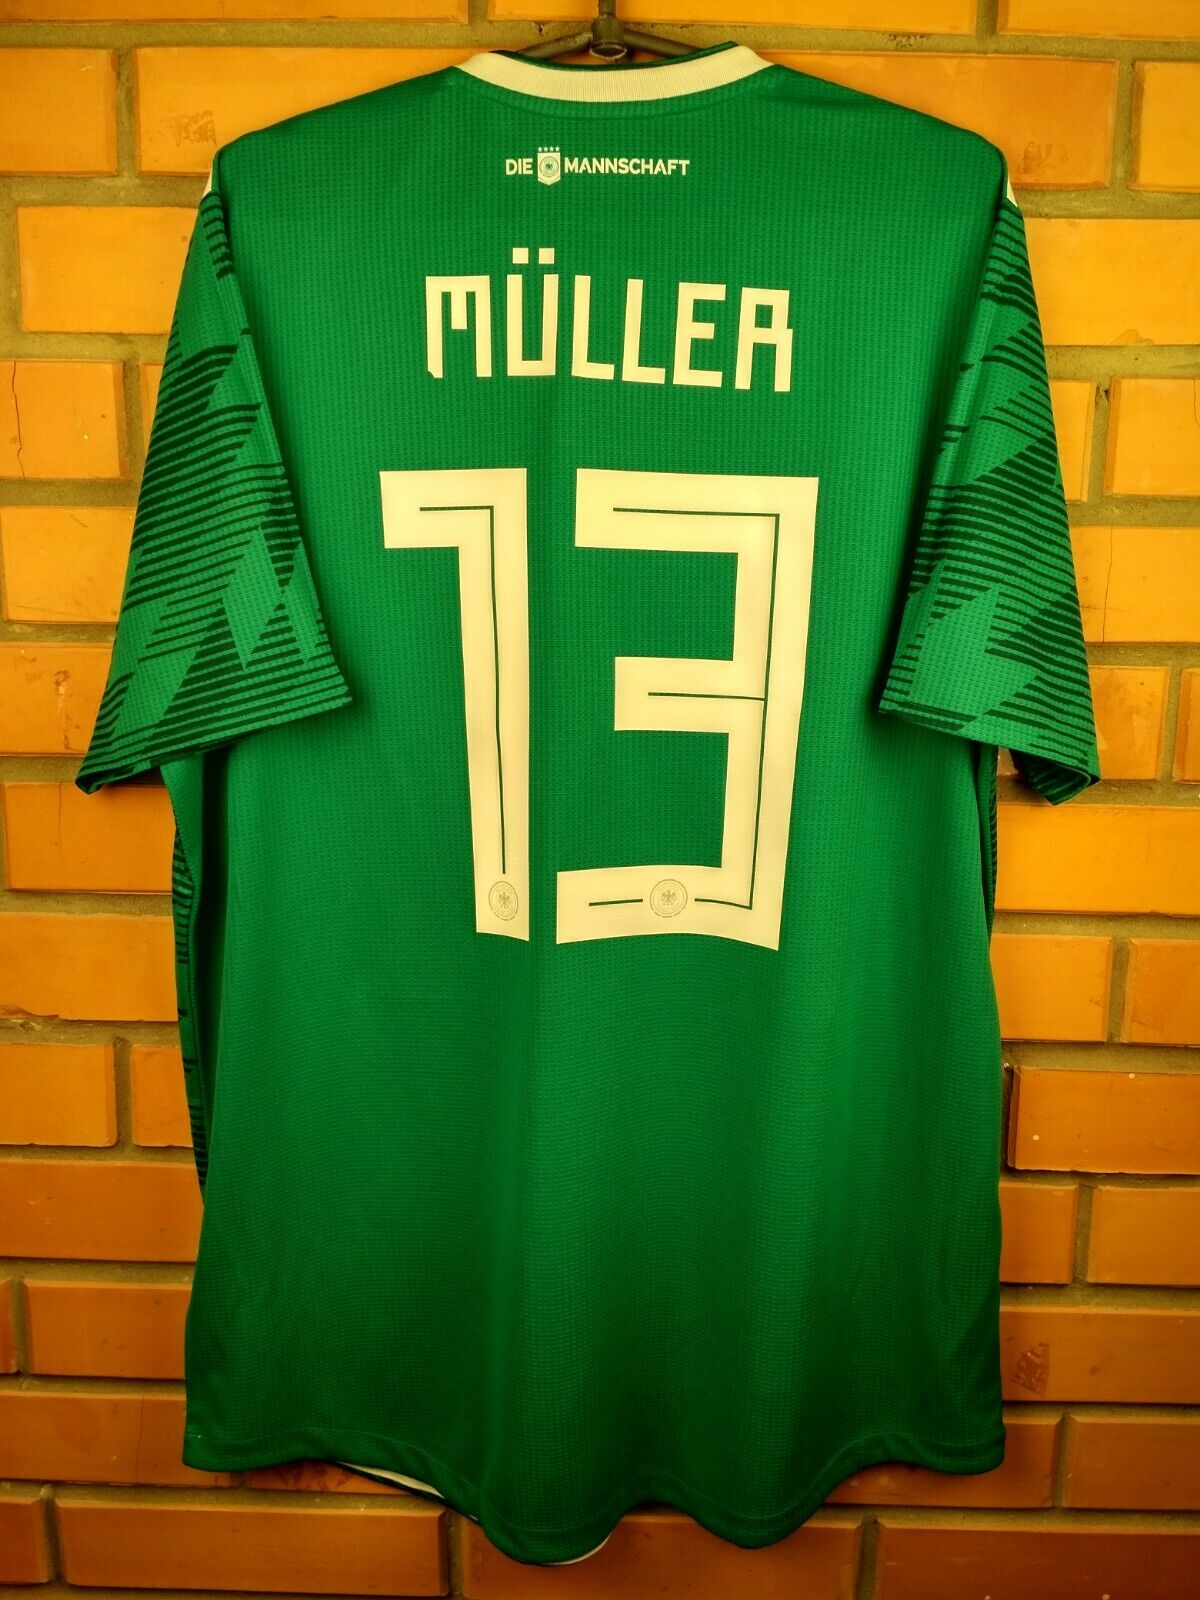 Muller Germany authentic jersey XL 2018 away shirt BR3143 soccer football Adidas